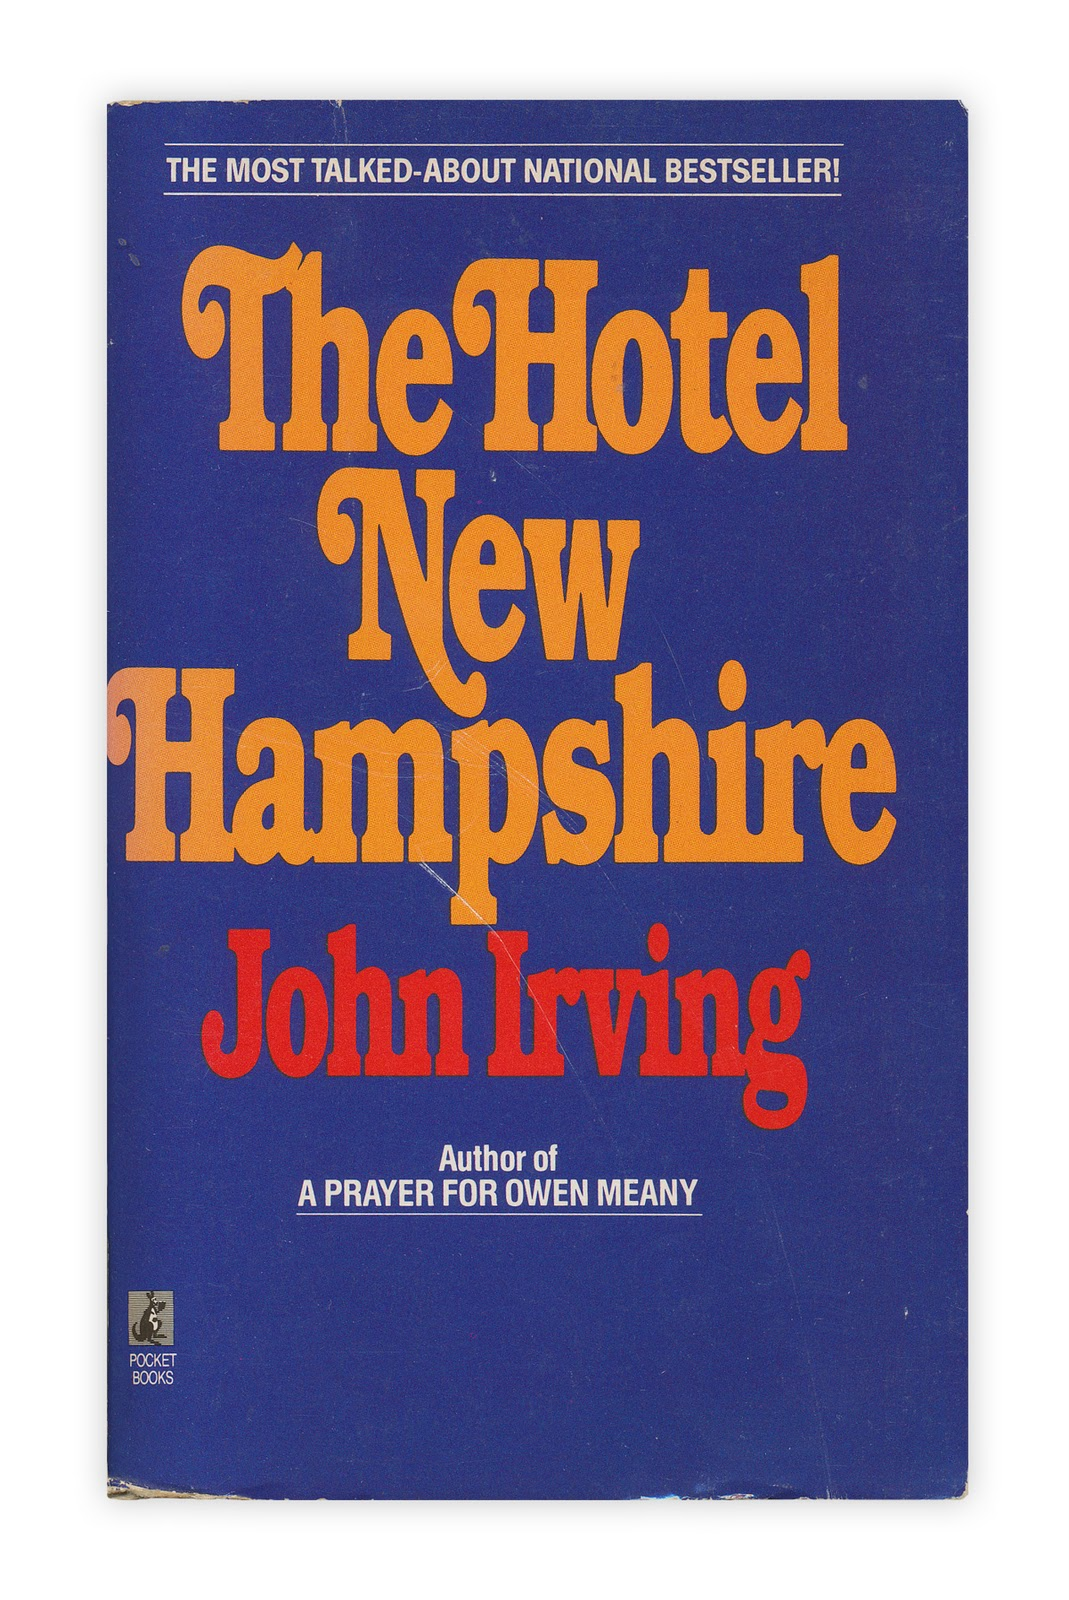 forgotten bookmarks  found in the hotel new hampshire by john irving published by pocket books 1981